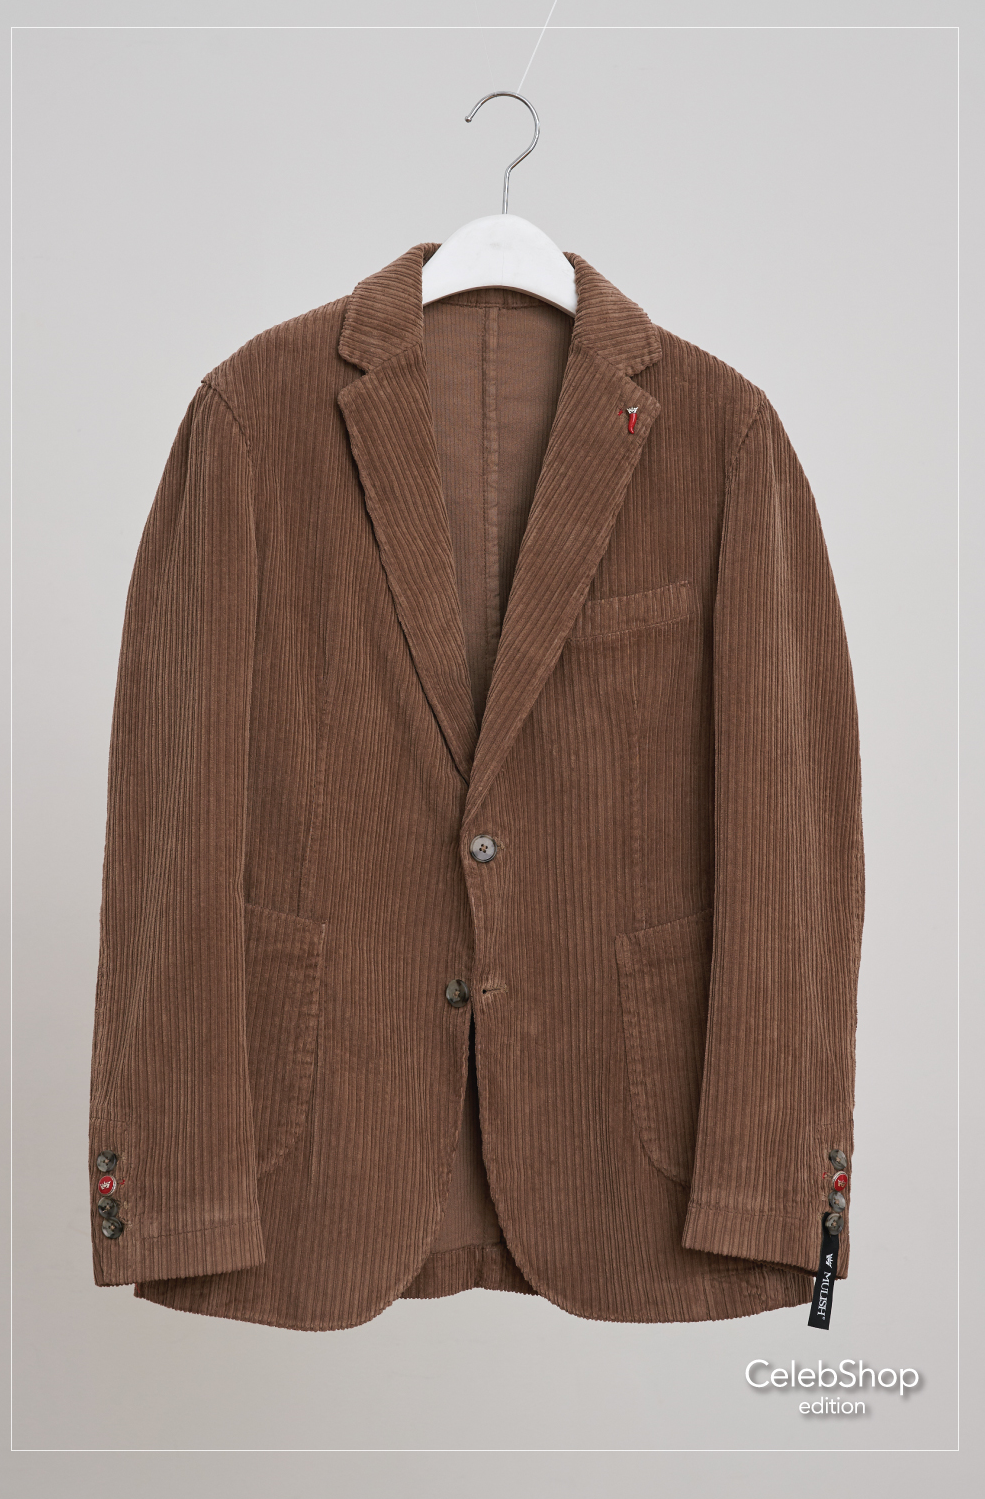 Corduroy single jacket(Camel/Navy)Celebshop Edition(셀렙샵에디션)